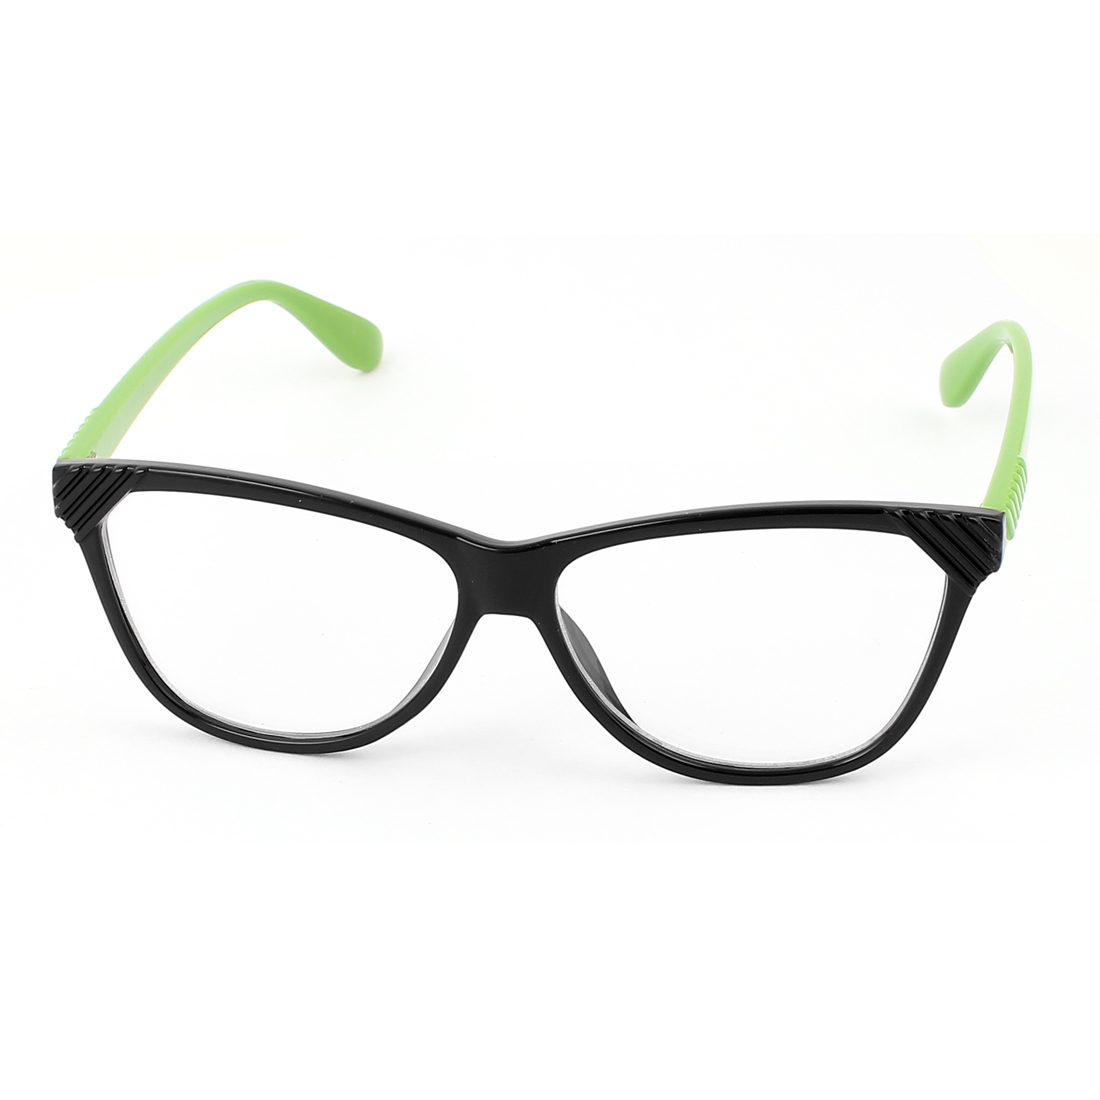 Plastic Arm Single Bridge Clear Lens Plain Glasses Eyeglasses Plano Spectacles Green